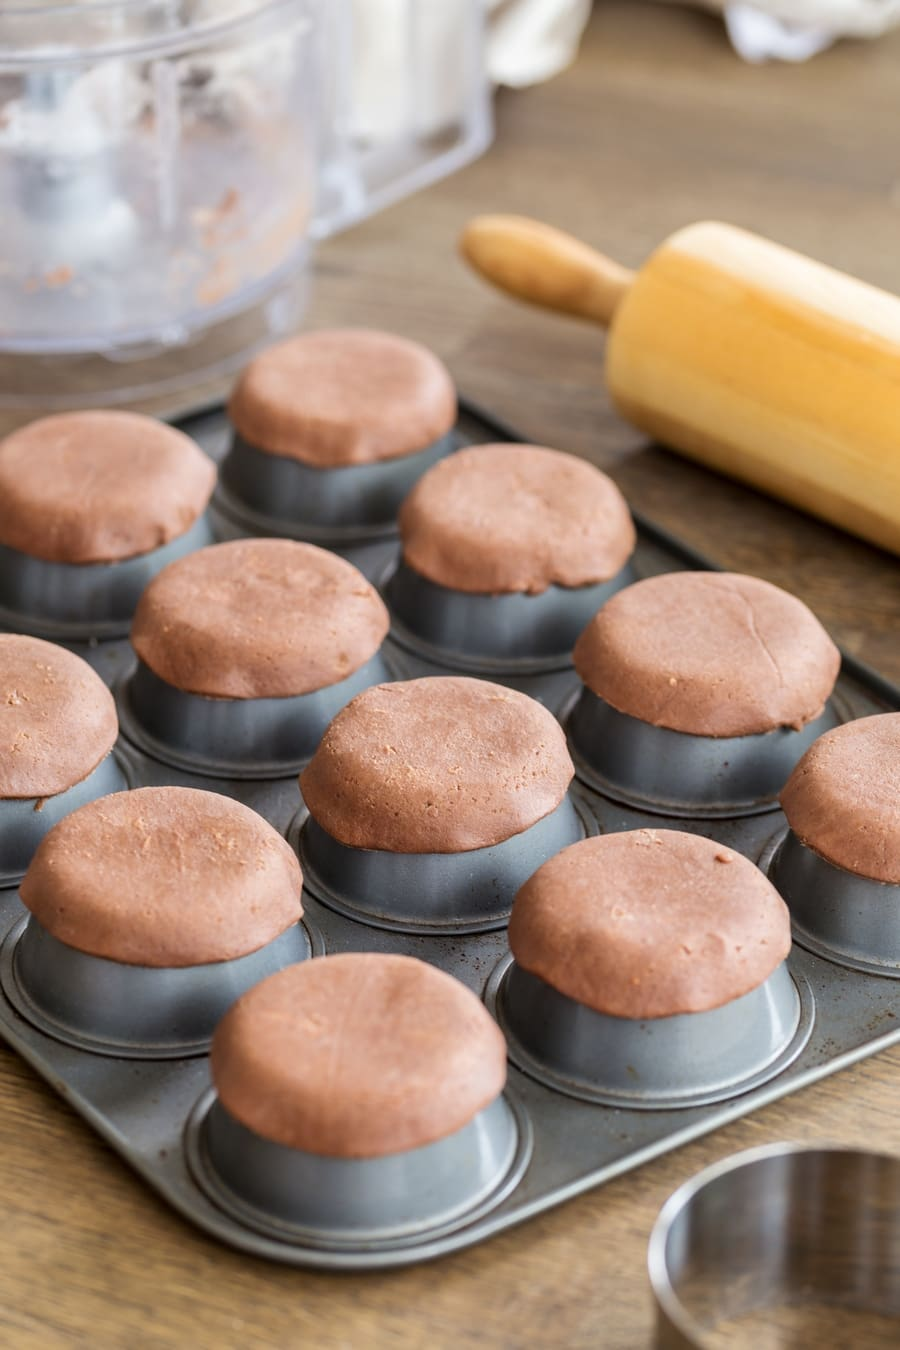 Shortcrust pastry circles baked over upside down muffin tin to make small shortcrust shells.